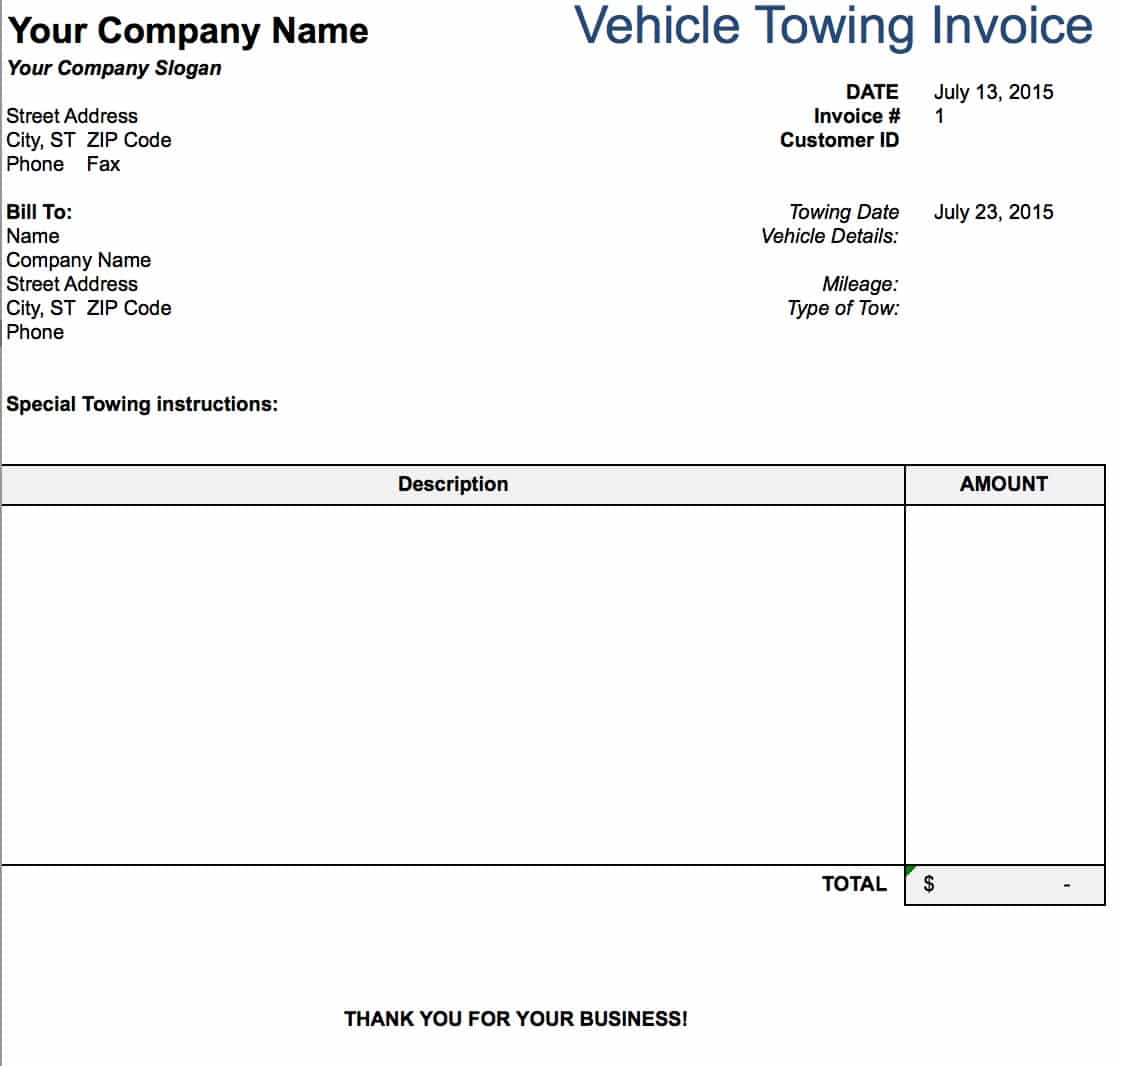 Free Tow Service Invoice Template Excel PDF Word Doc - How to make a invoice free for service business